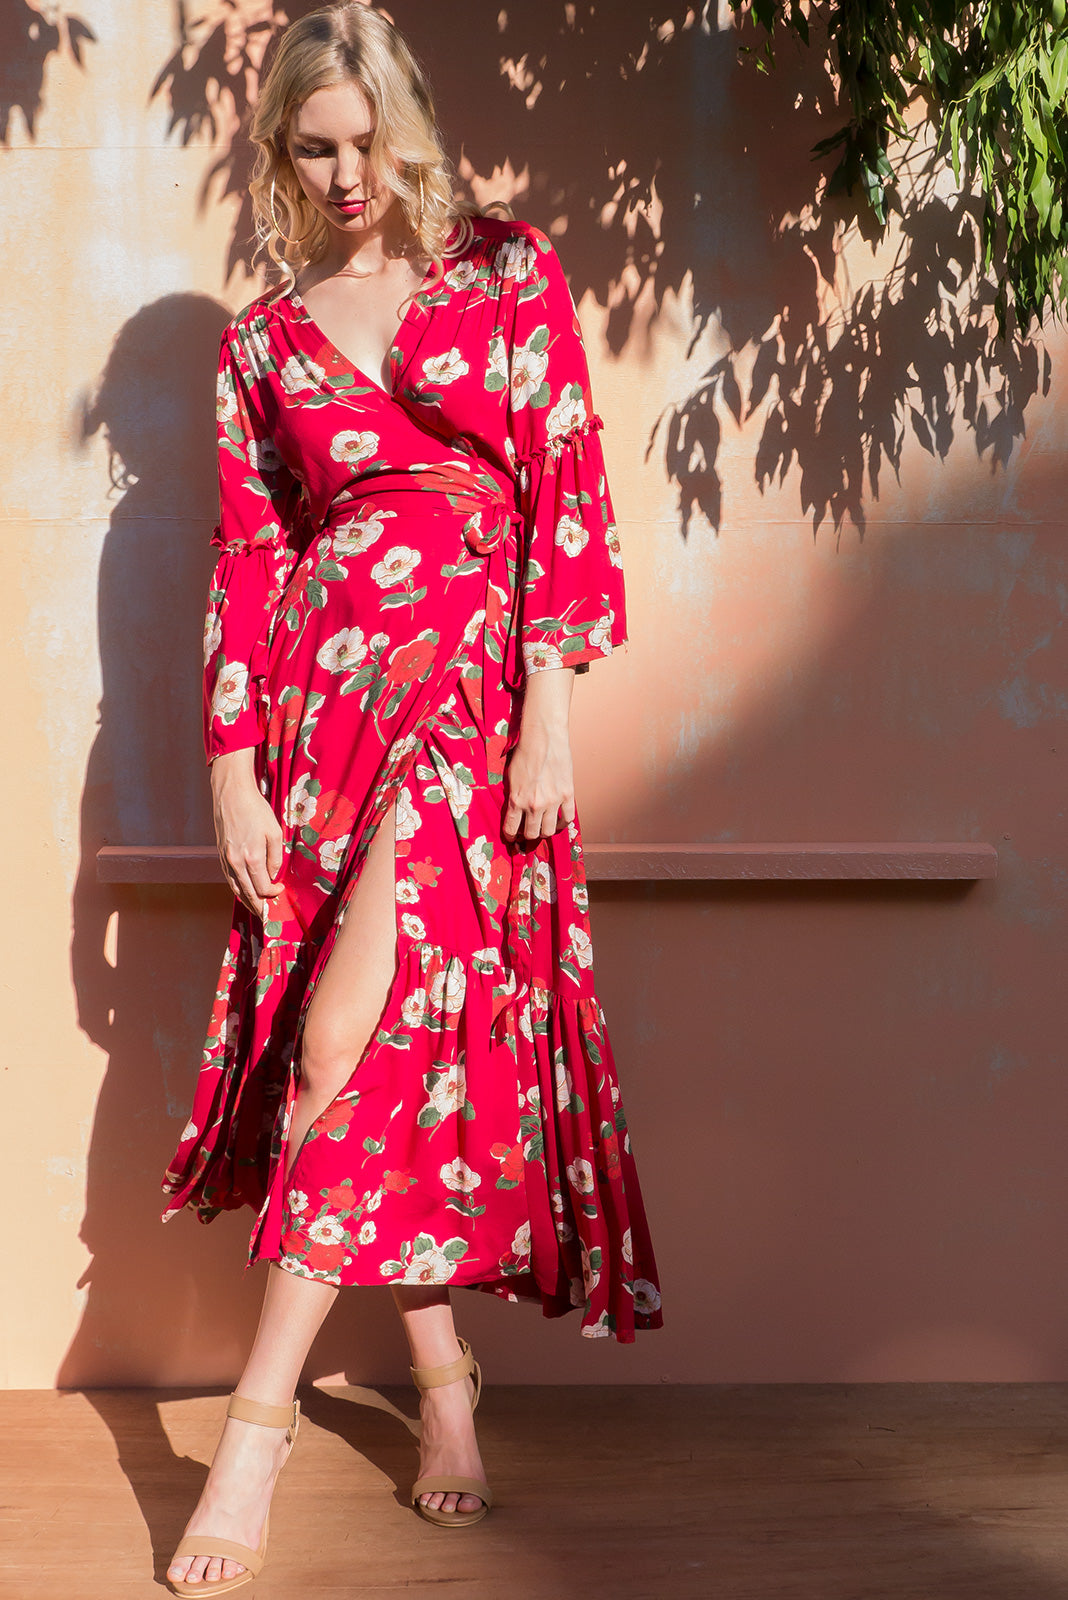 Monterey Ruby Red Maxi Dress in a gorgeous bright red floral poppy print on woven rayon and the dress features a full frill sleeve